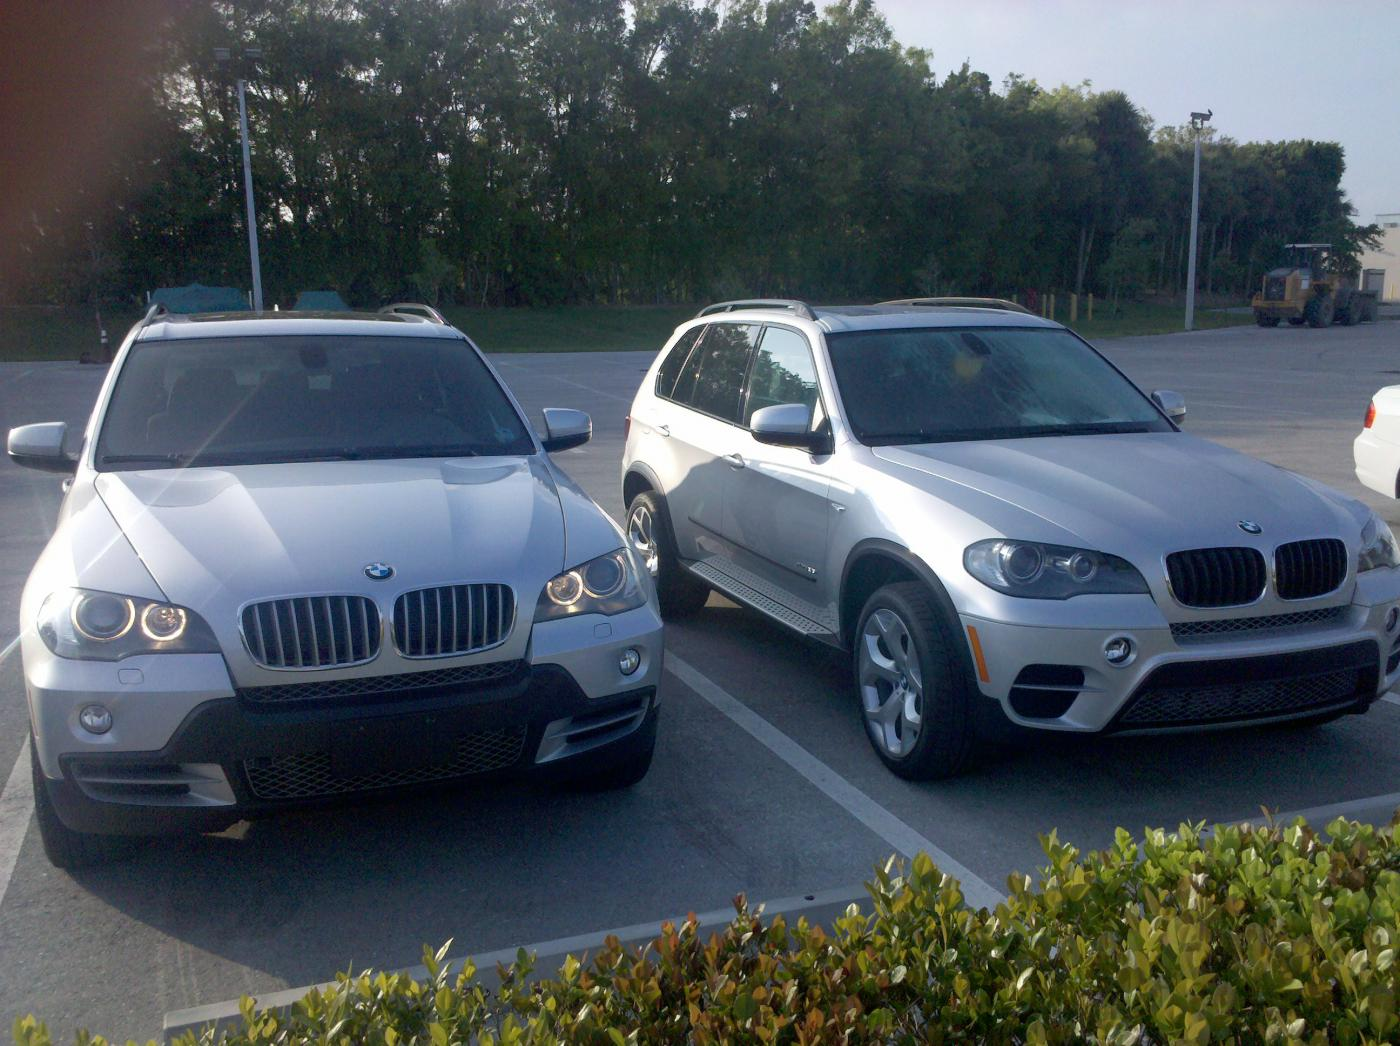 2010 Bmw X5 Vs 2011 X5 In Pictures Xoutpost Com